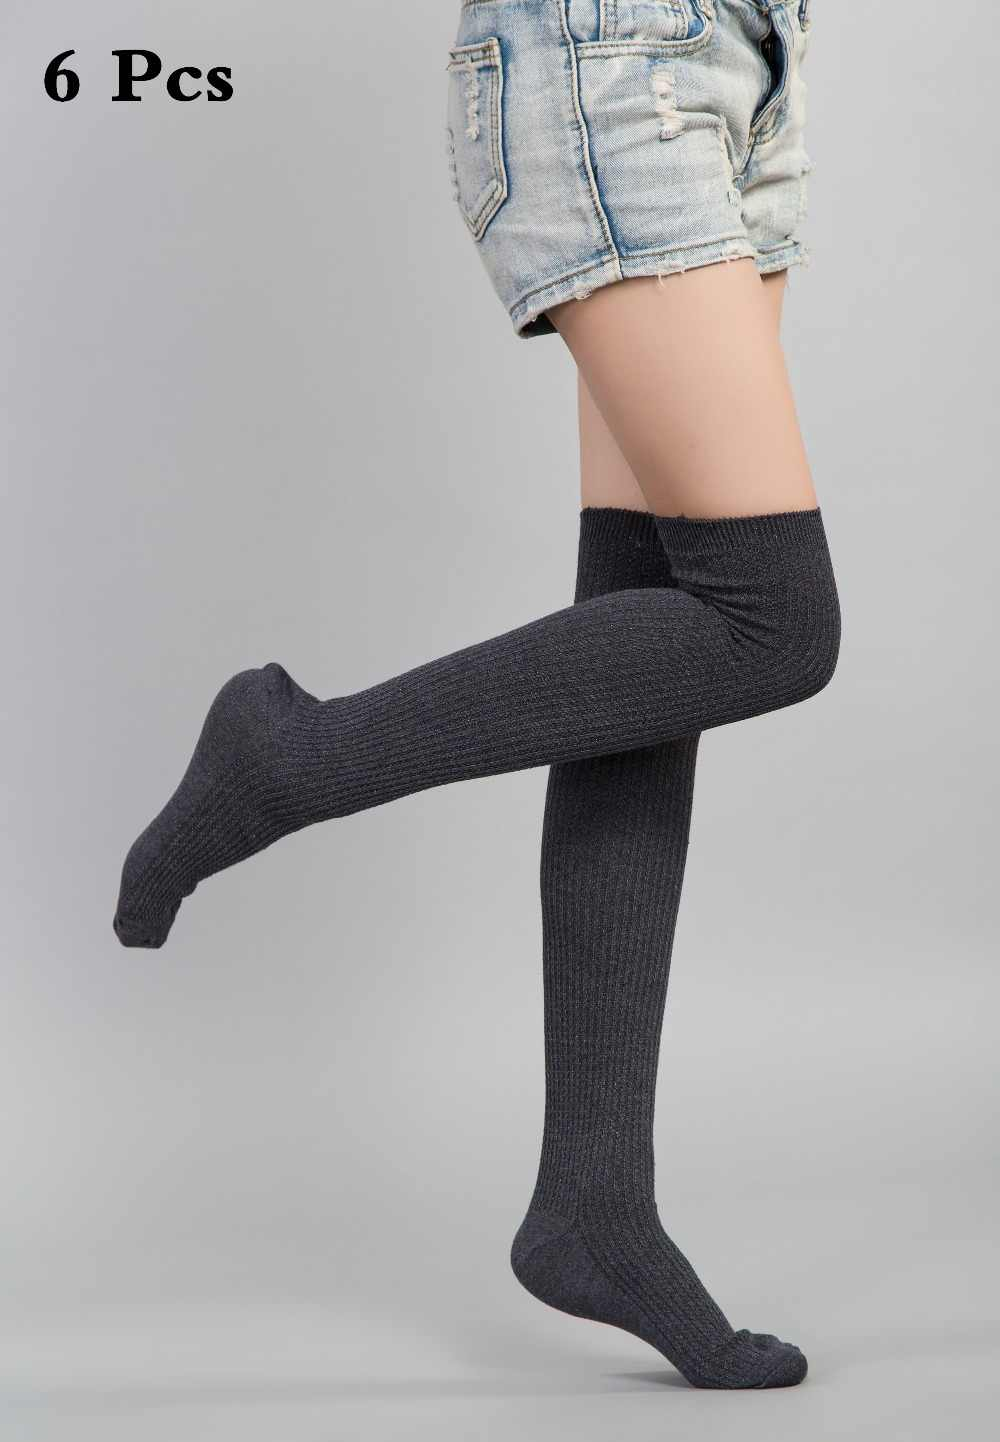 a2e9c83e1 Feishilianyu Corolful Sexy Fashion Knit Stockings Women Cotton Long Knee  High Thigh High Stockings for Women